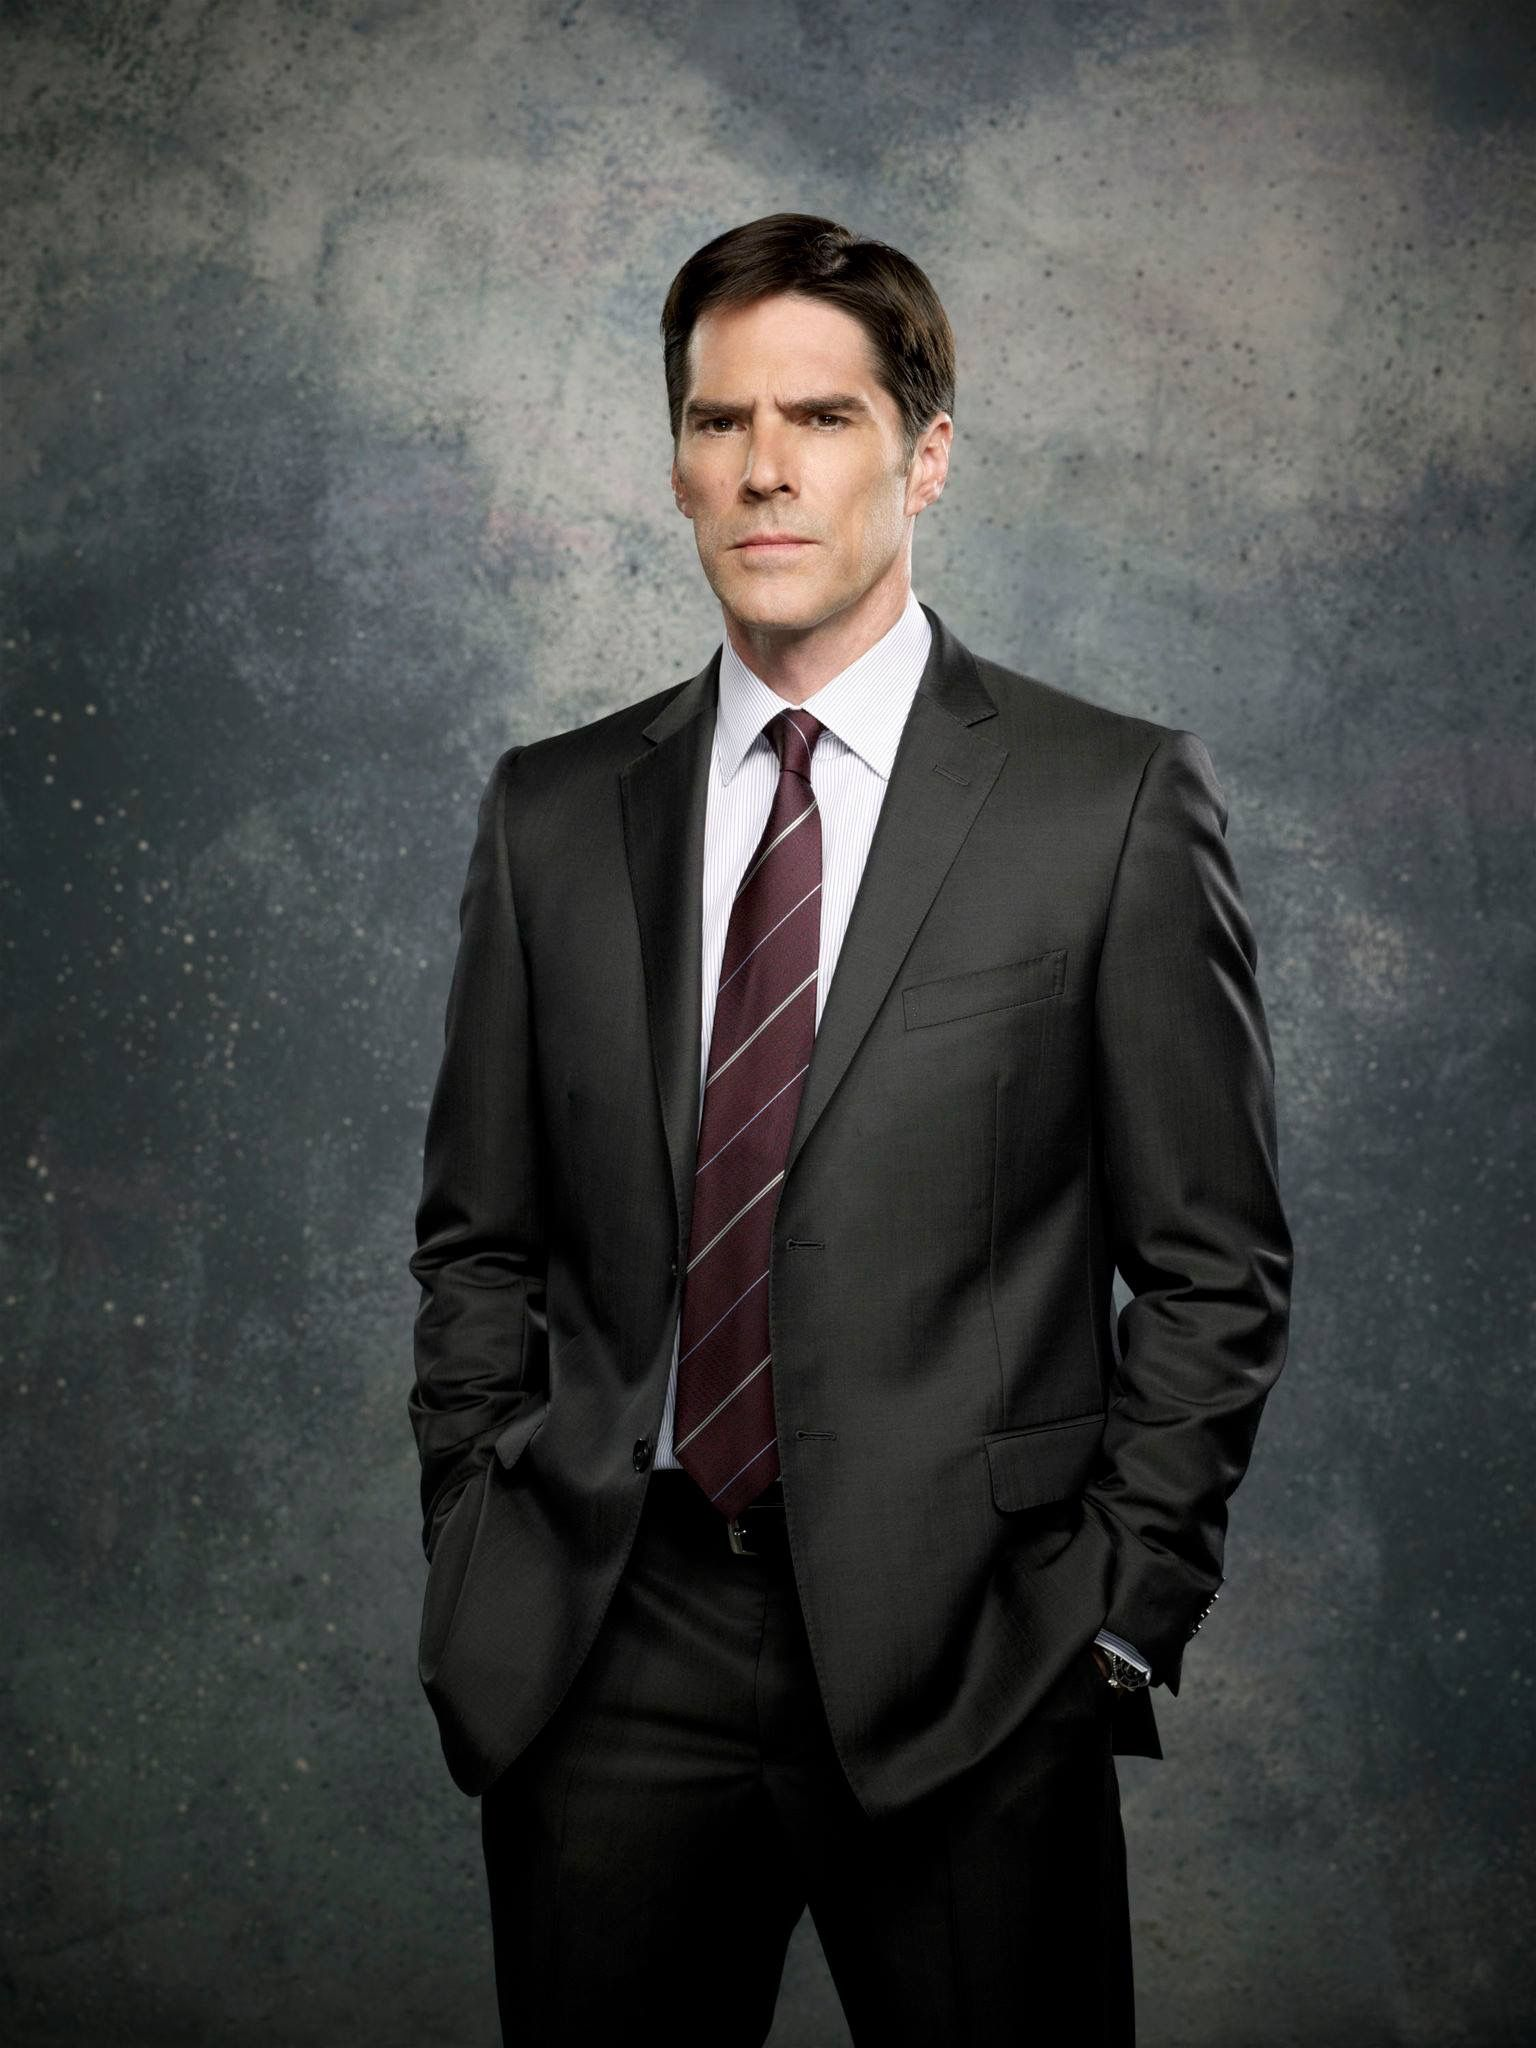 Thomas gibson as ssa aaron hotchner criminal minds also best tv favorites images in csi crime scene rh pinterest